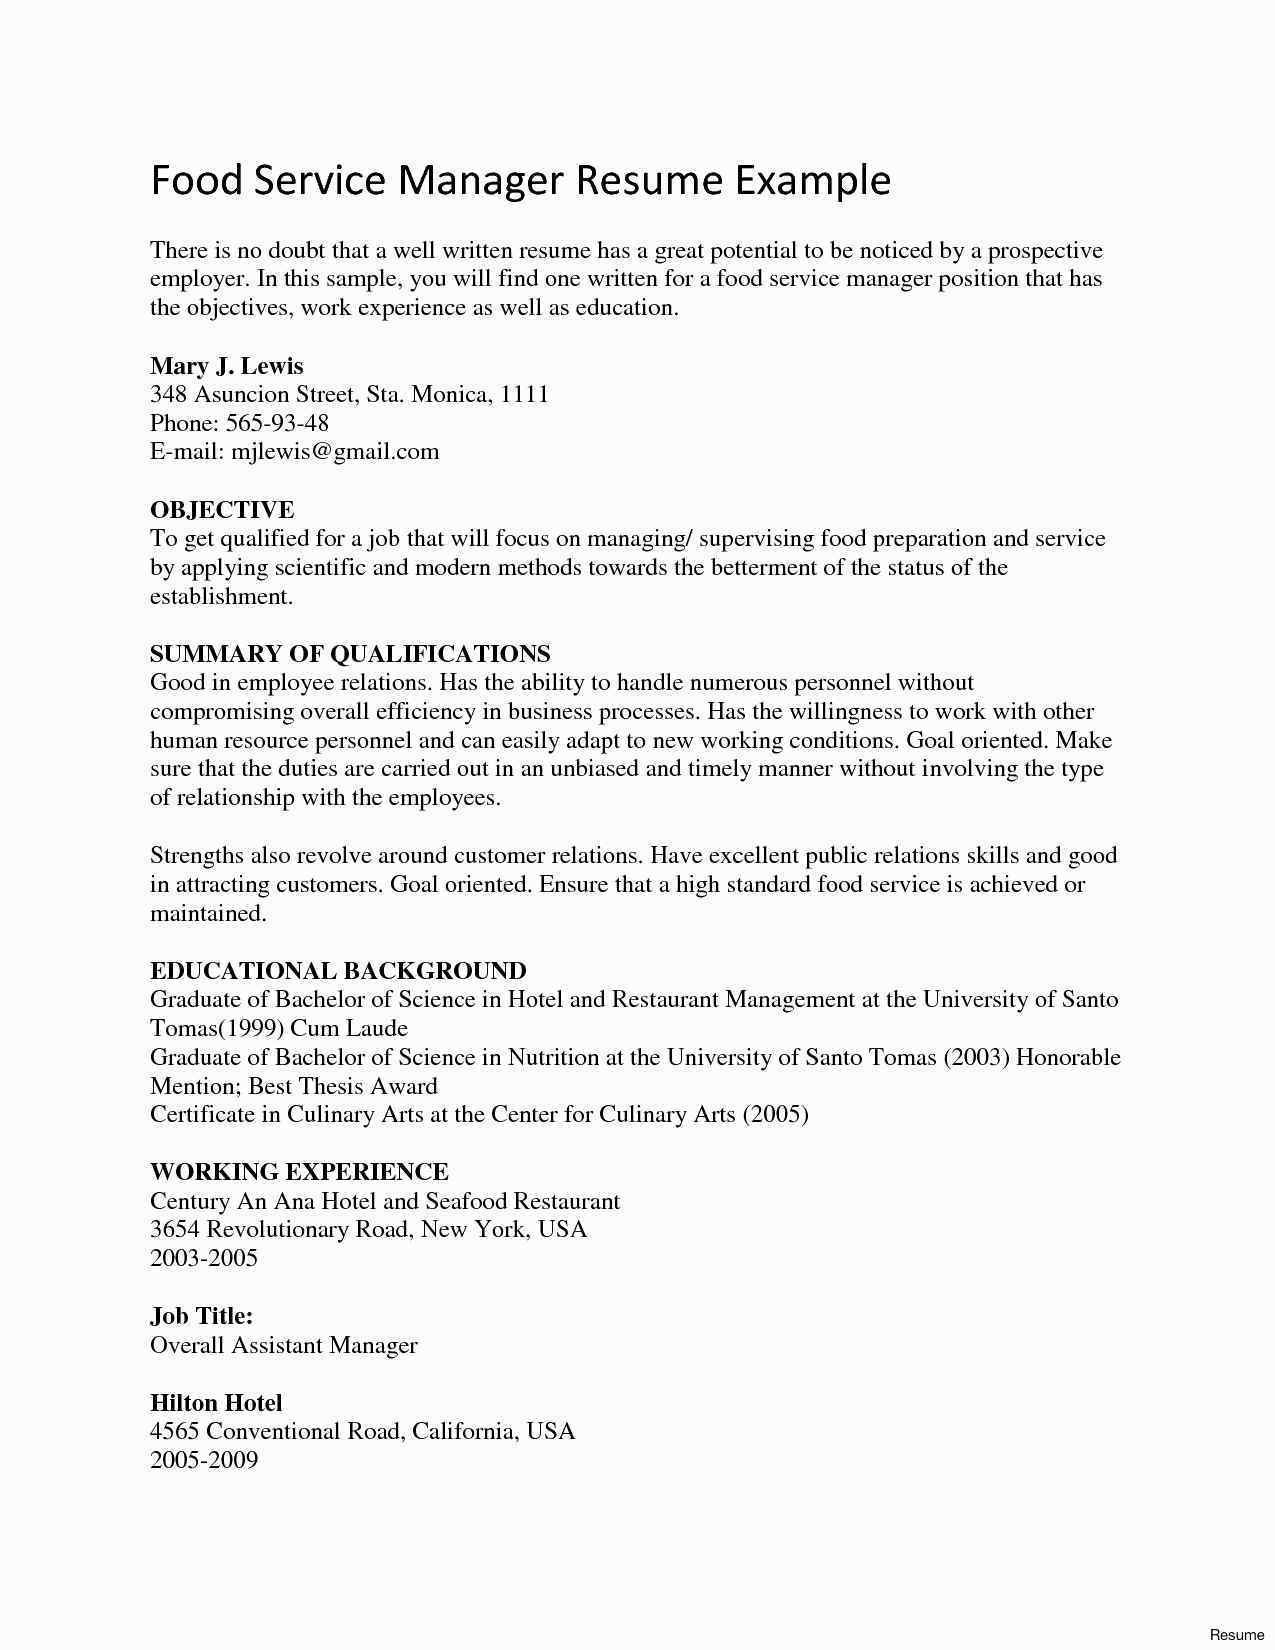 Food Service Manager Resume - Food Service Resume Best 51 Elegant Resume Samples for Food